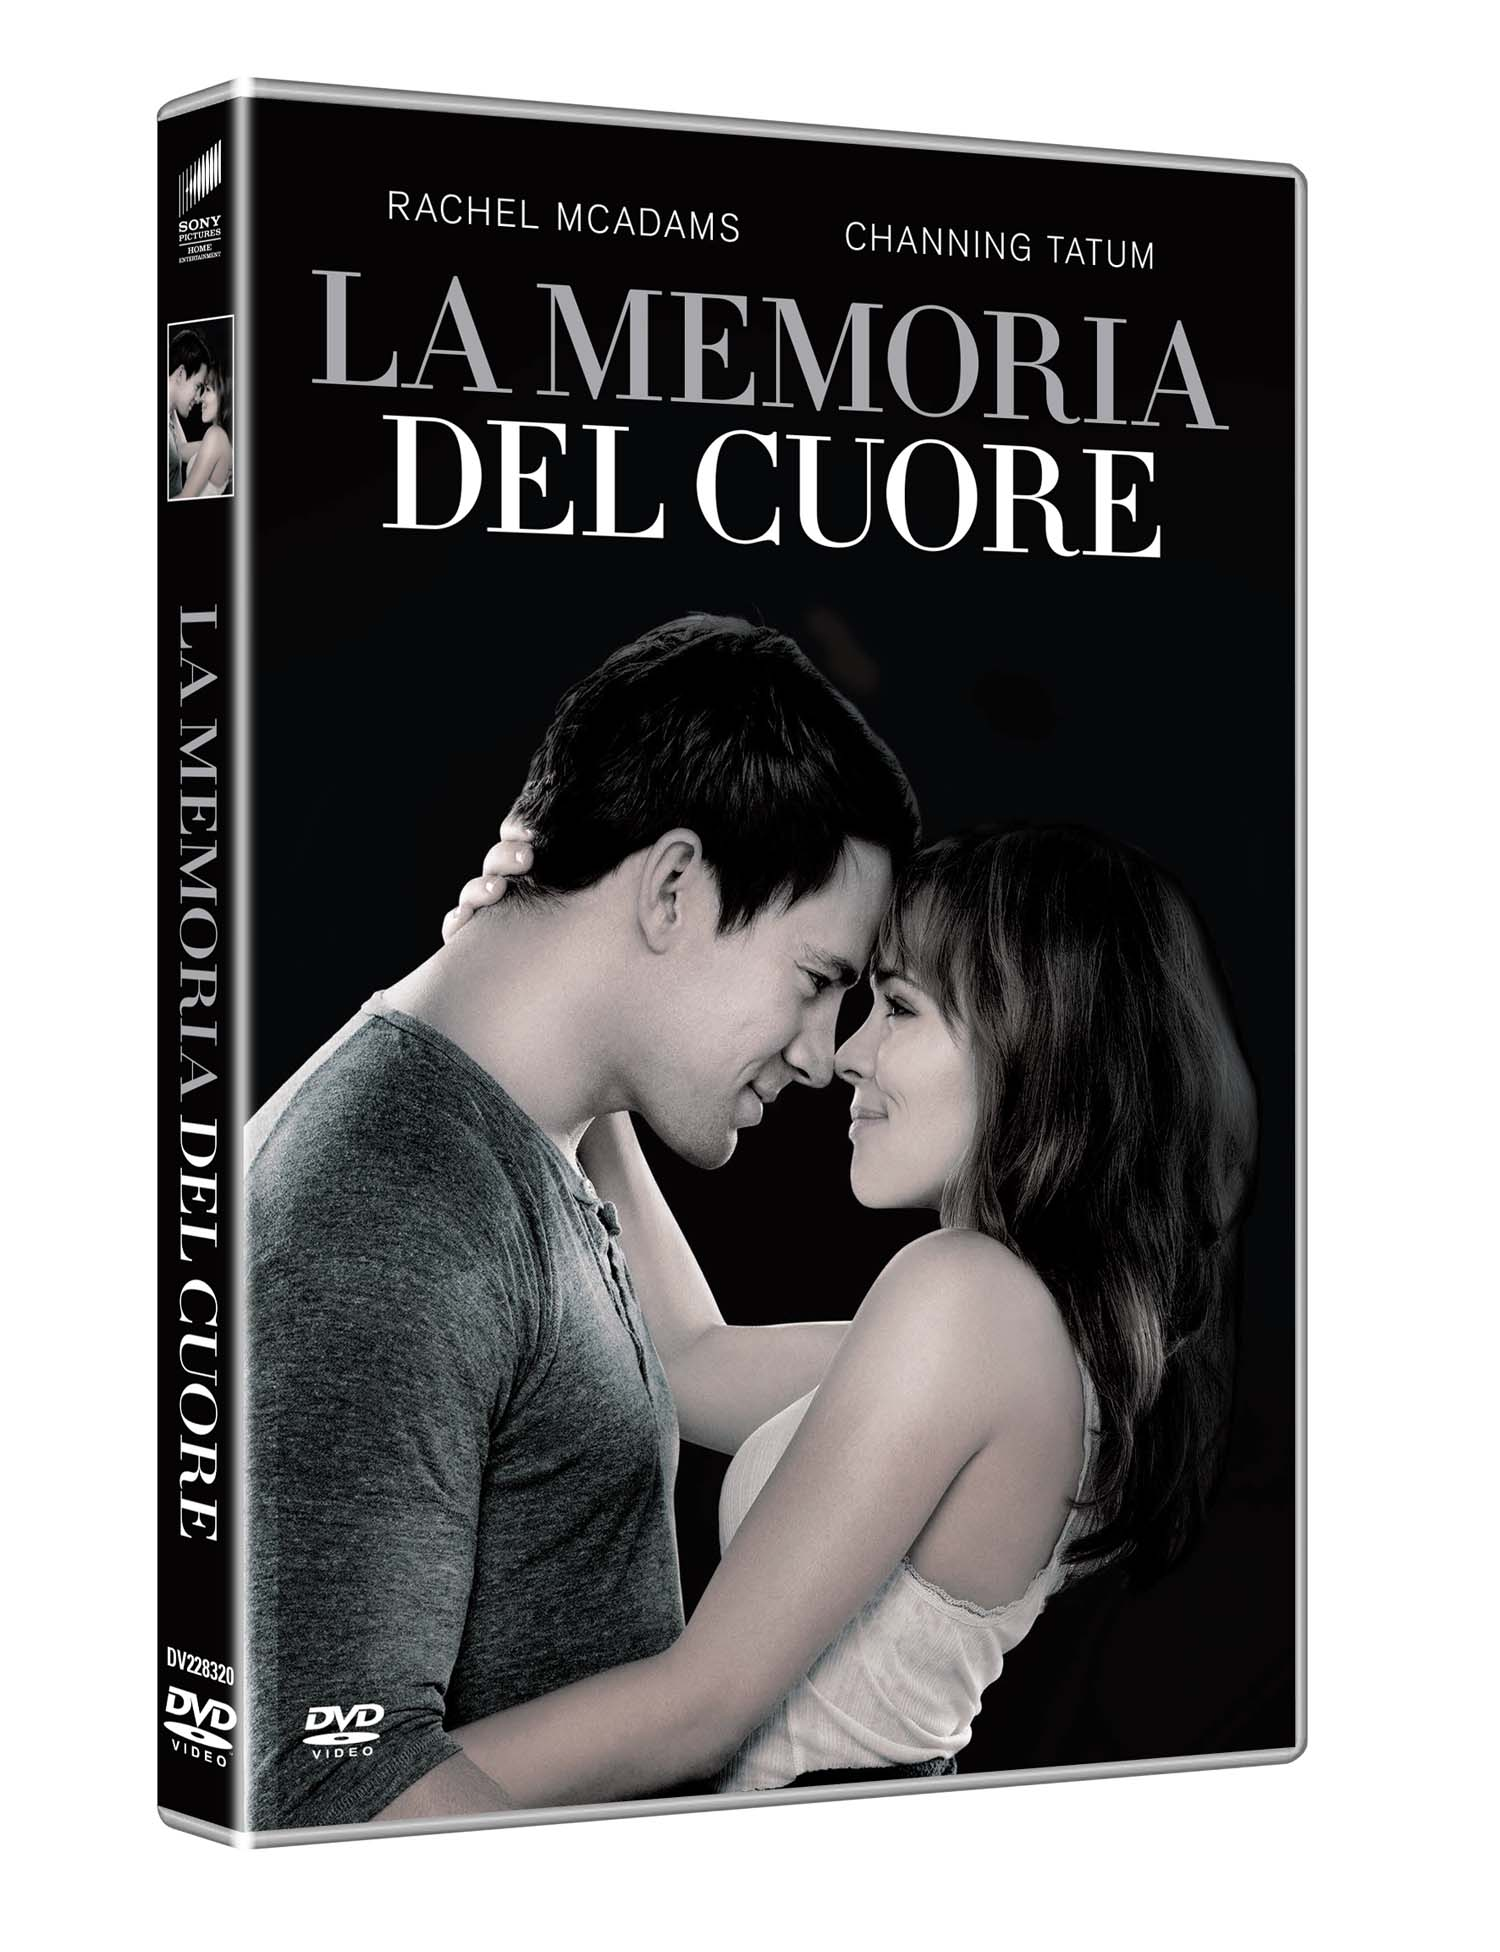 LA MEMORIA DEL CUORE (SAN VALENTINO COLLECTION) (DVD)